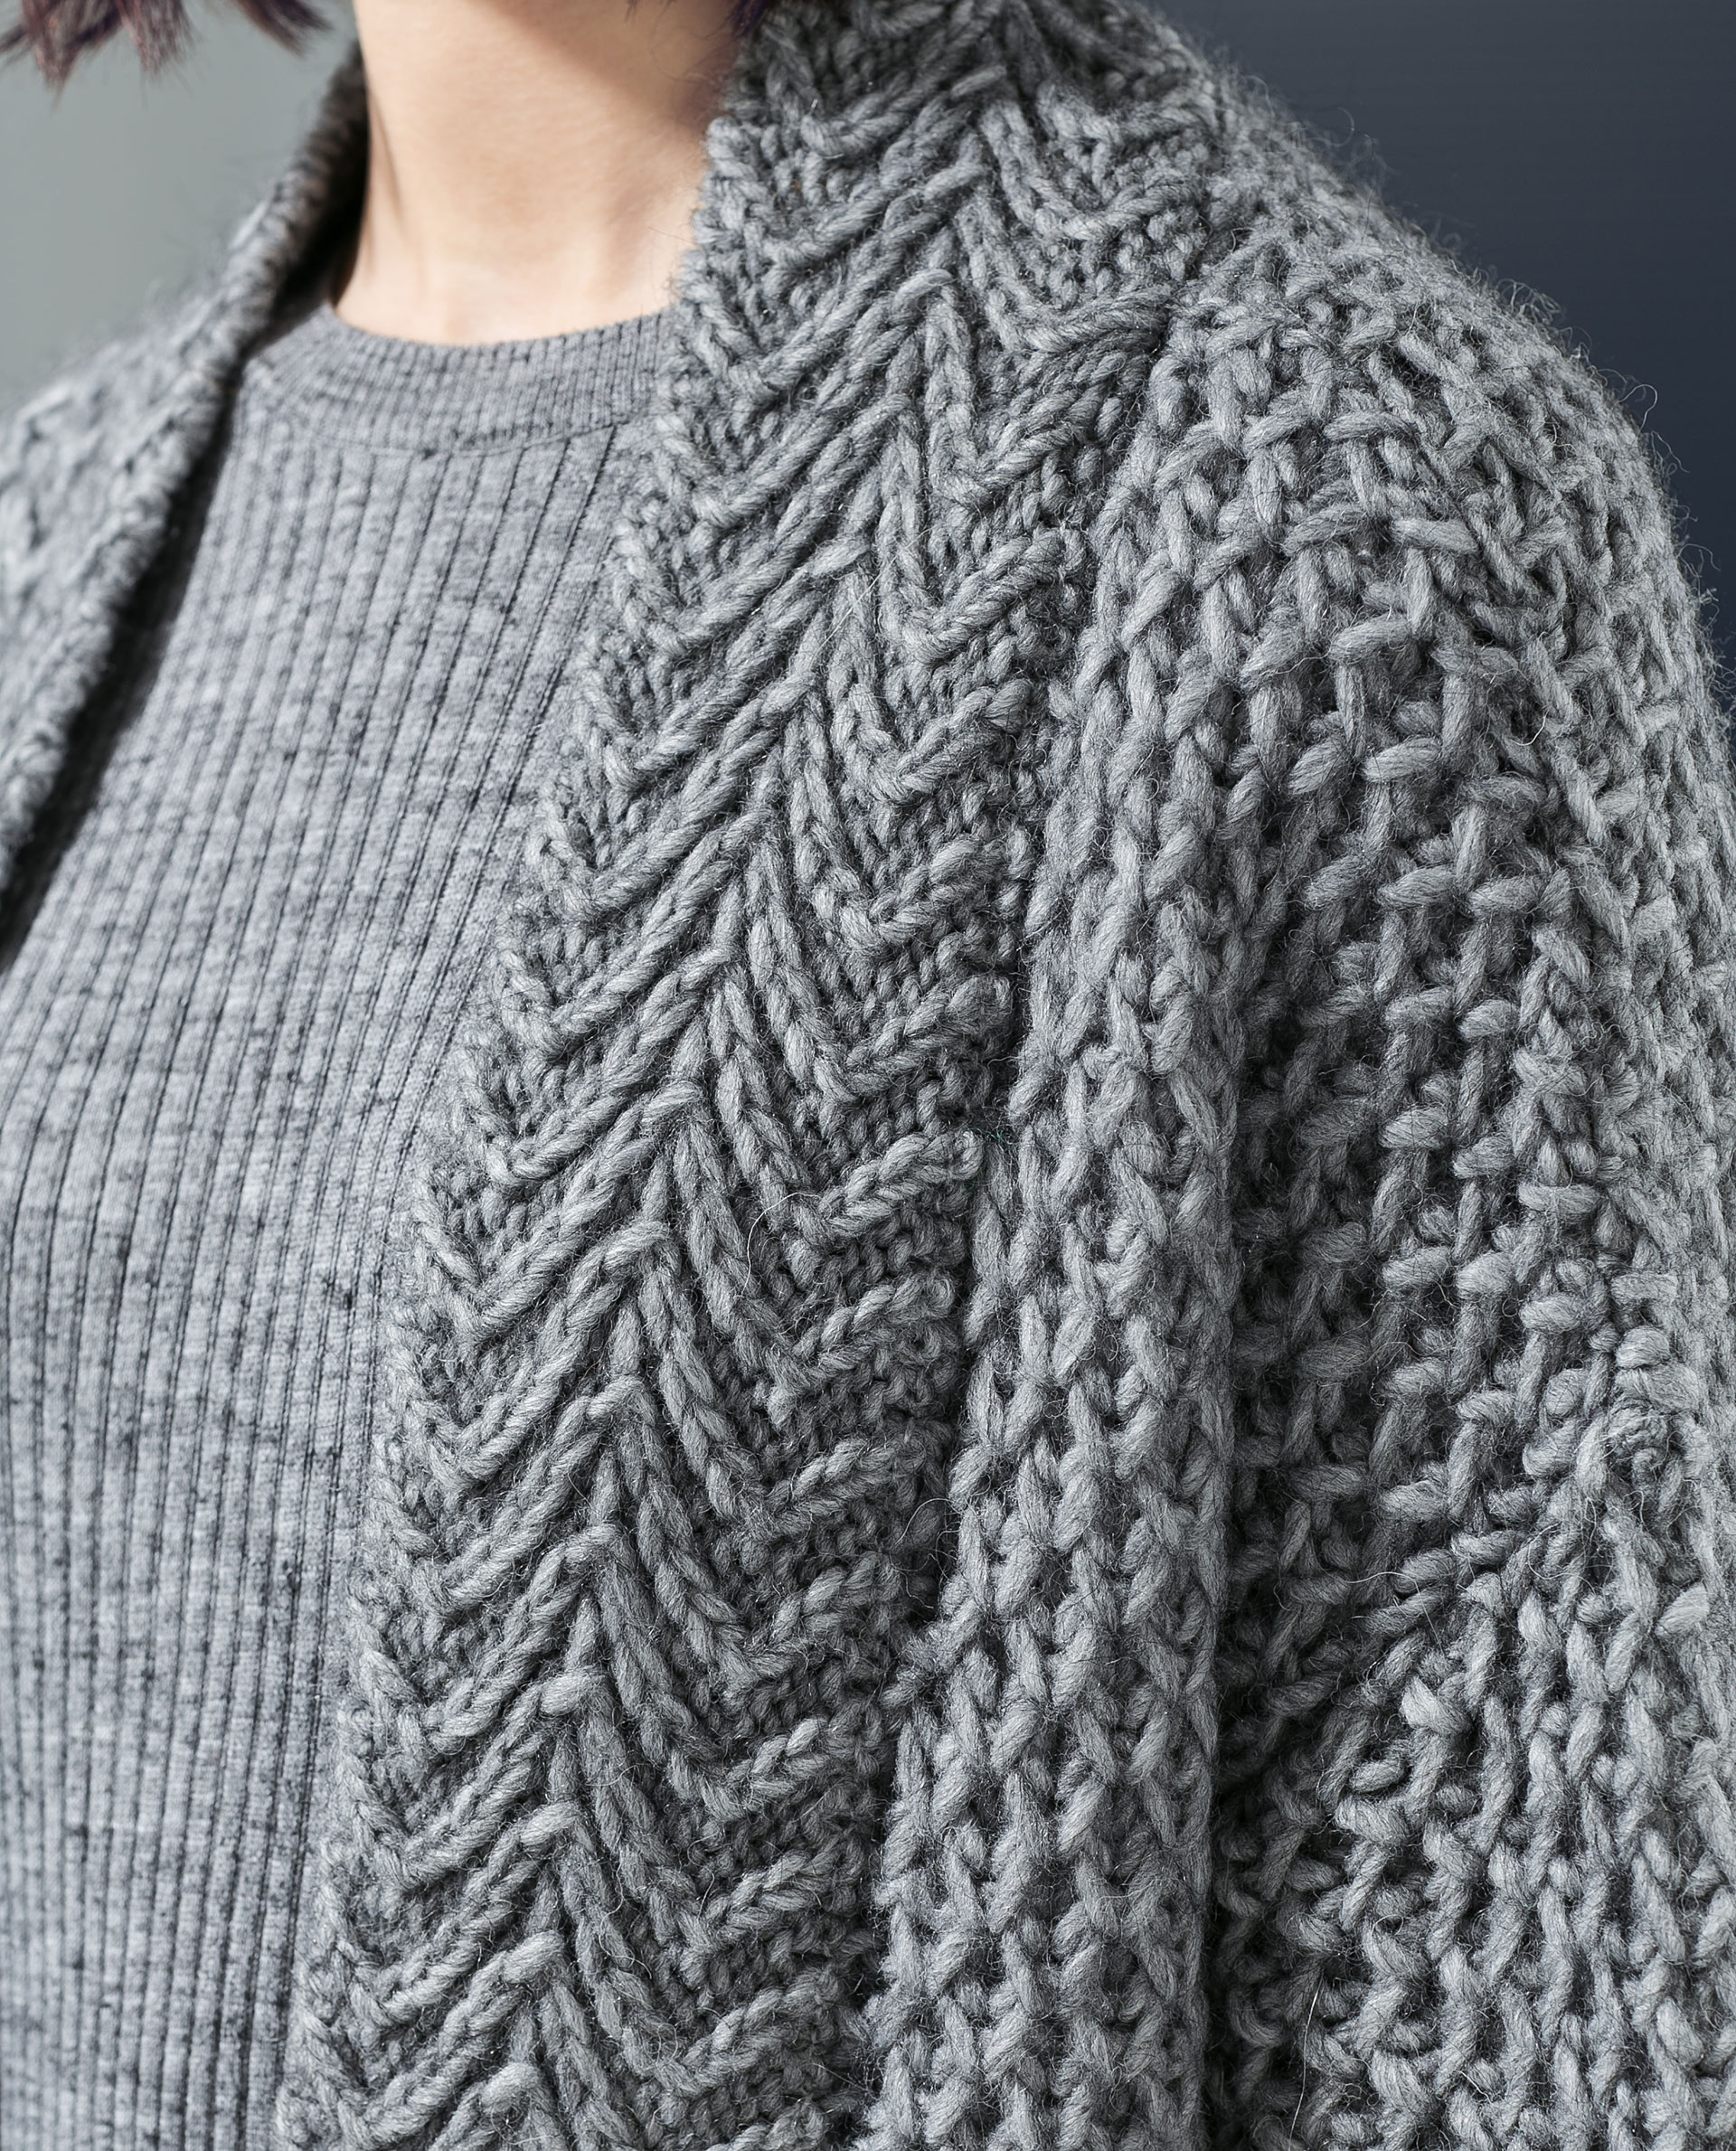 Knitting Pattern For Cardigan With Pockets : Zara Knit Cardigan With Pockets in Gray Lyst